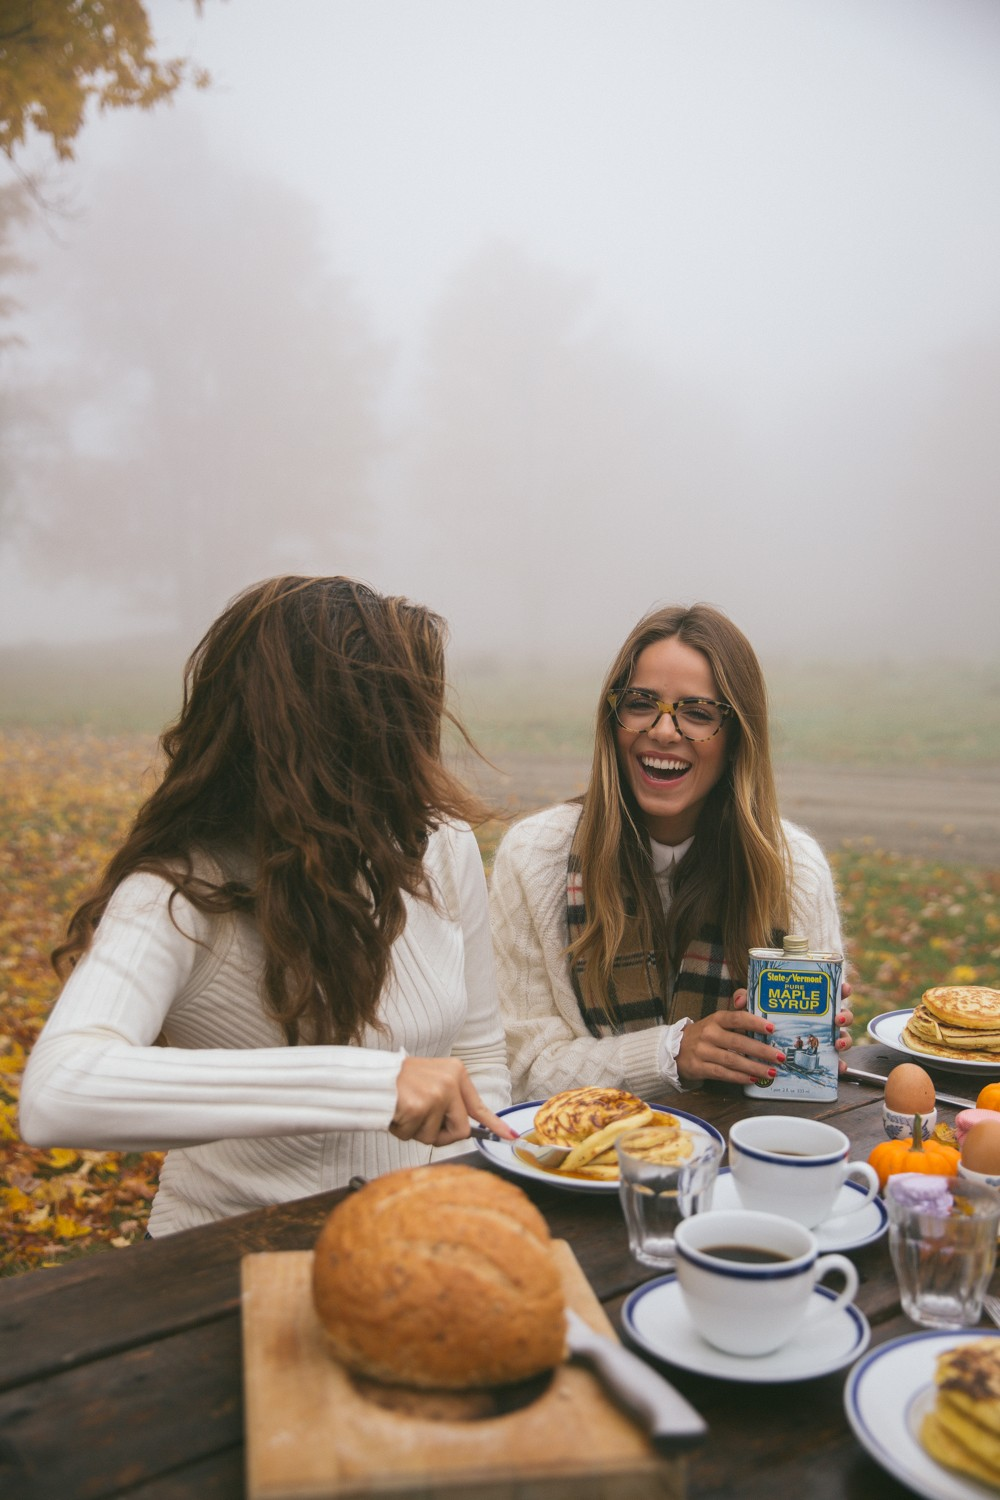 Outdoor breakfast with your BFF